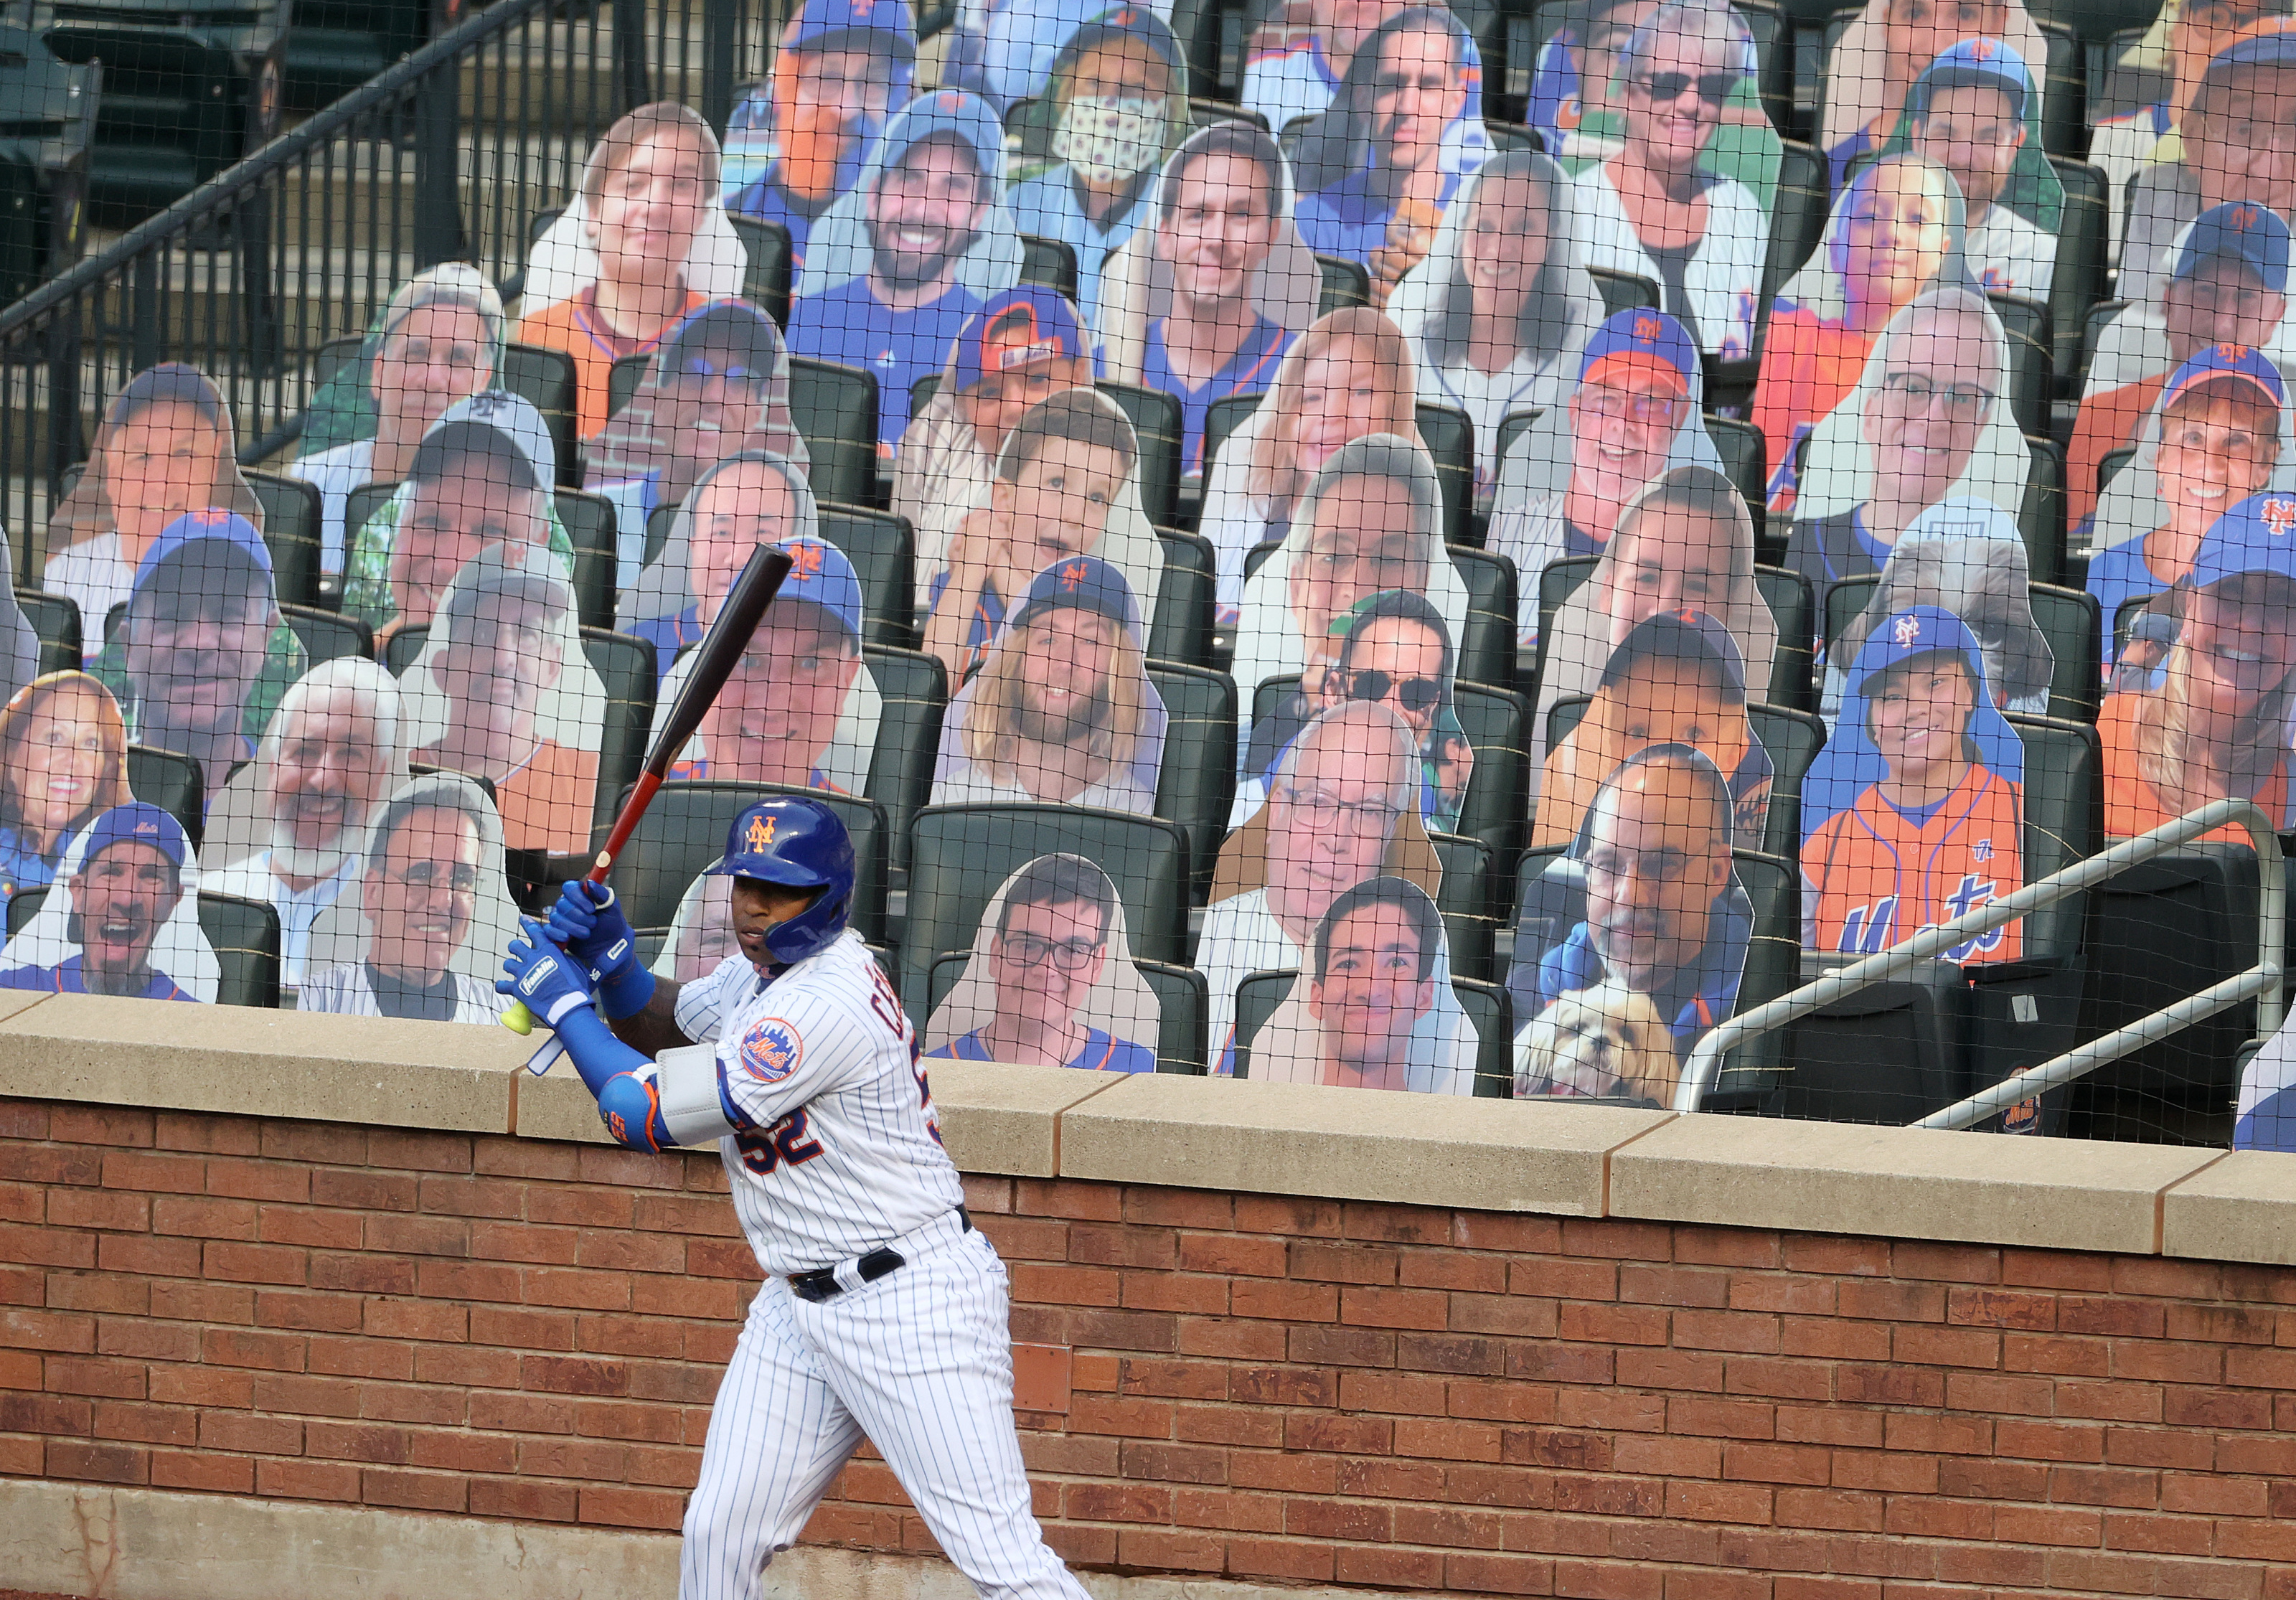 New York Mets Cardboard Cutouts Of Fans You Can T Be Serious